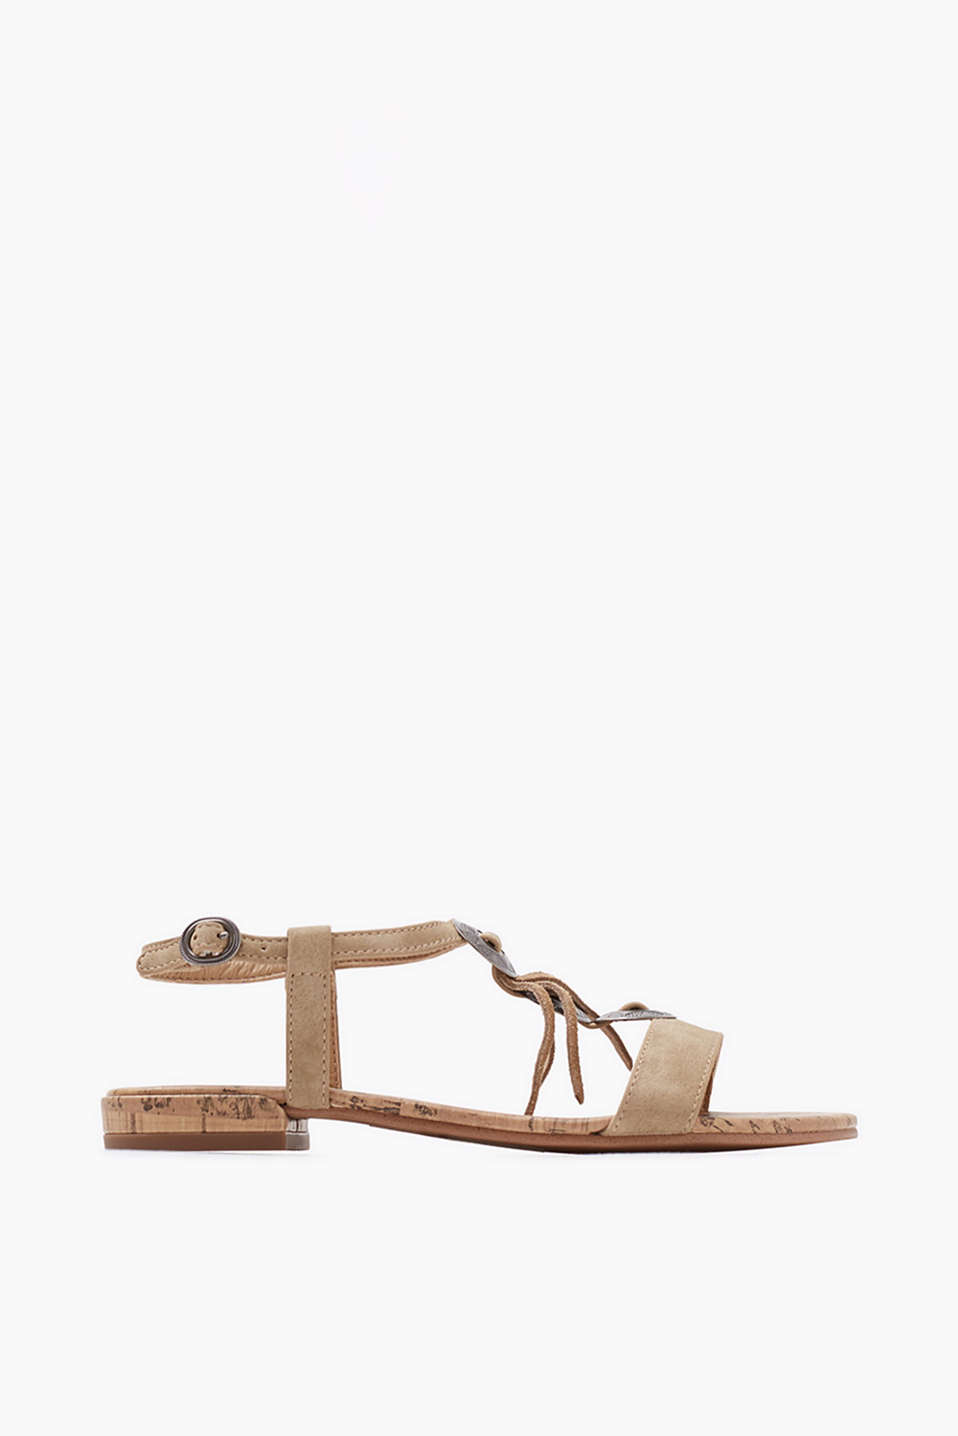 With an embellished T-bar: sandals in imitation nubuck leather